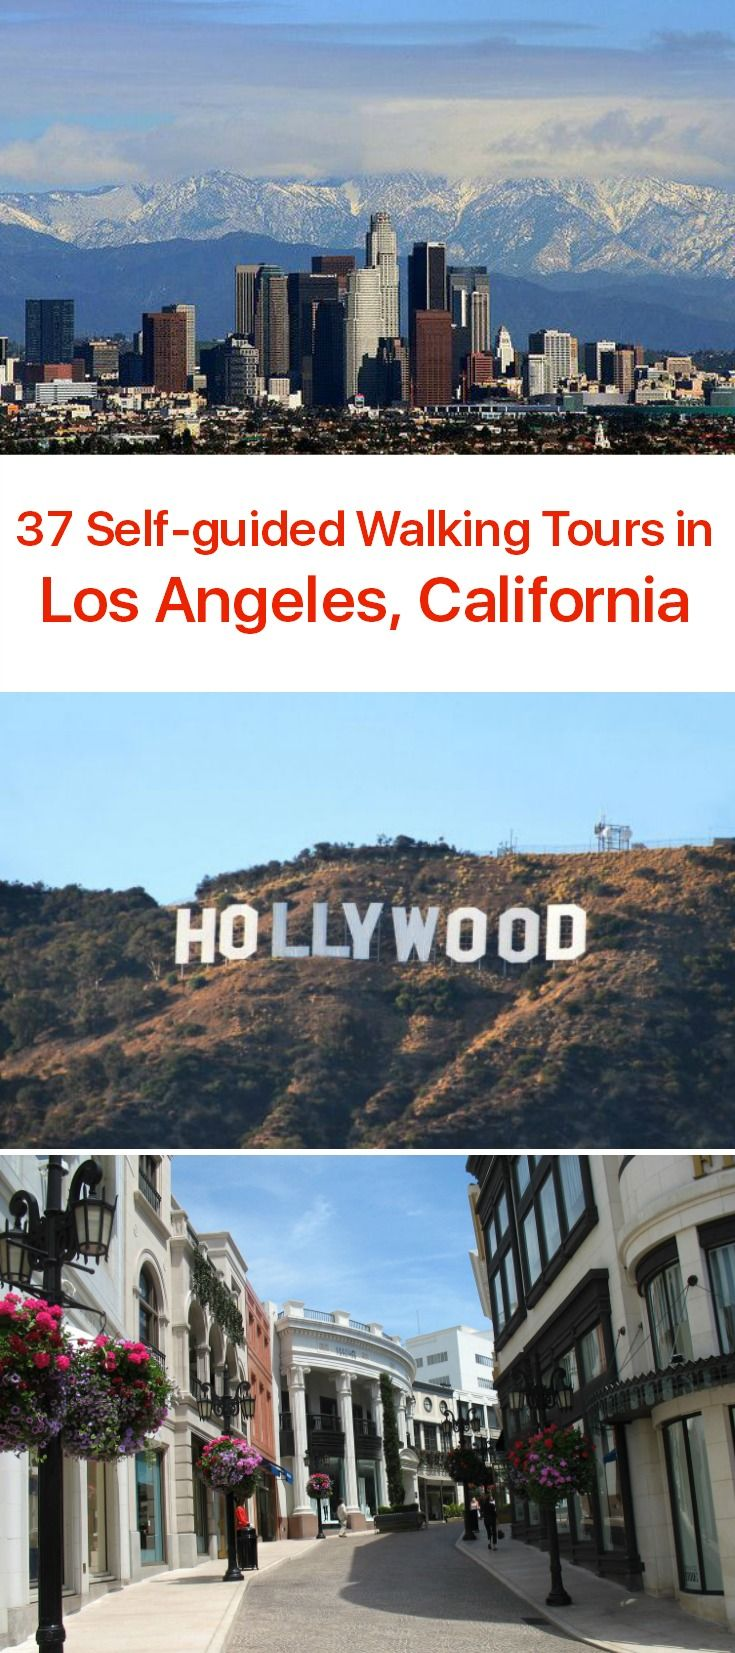 Los Angeles is the capital city of America's West Coast and world cinematography.  Millions of people make their way to LA each year – some to try their luck at becoming a movie star, others to simply catch a glimpse of the rich and famous.